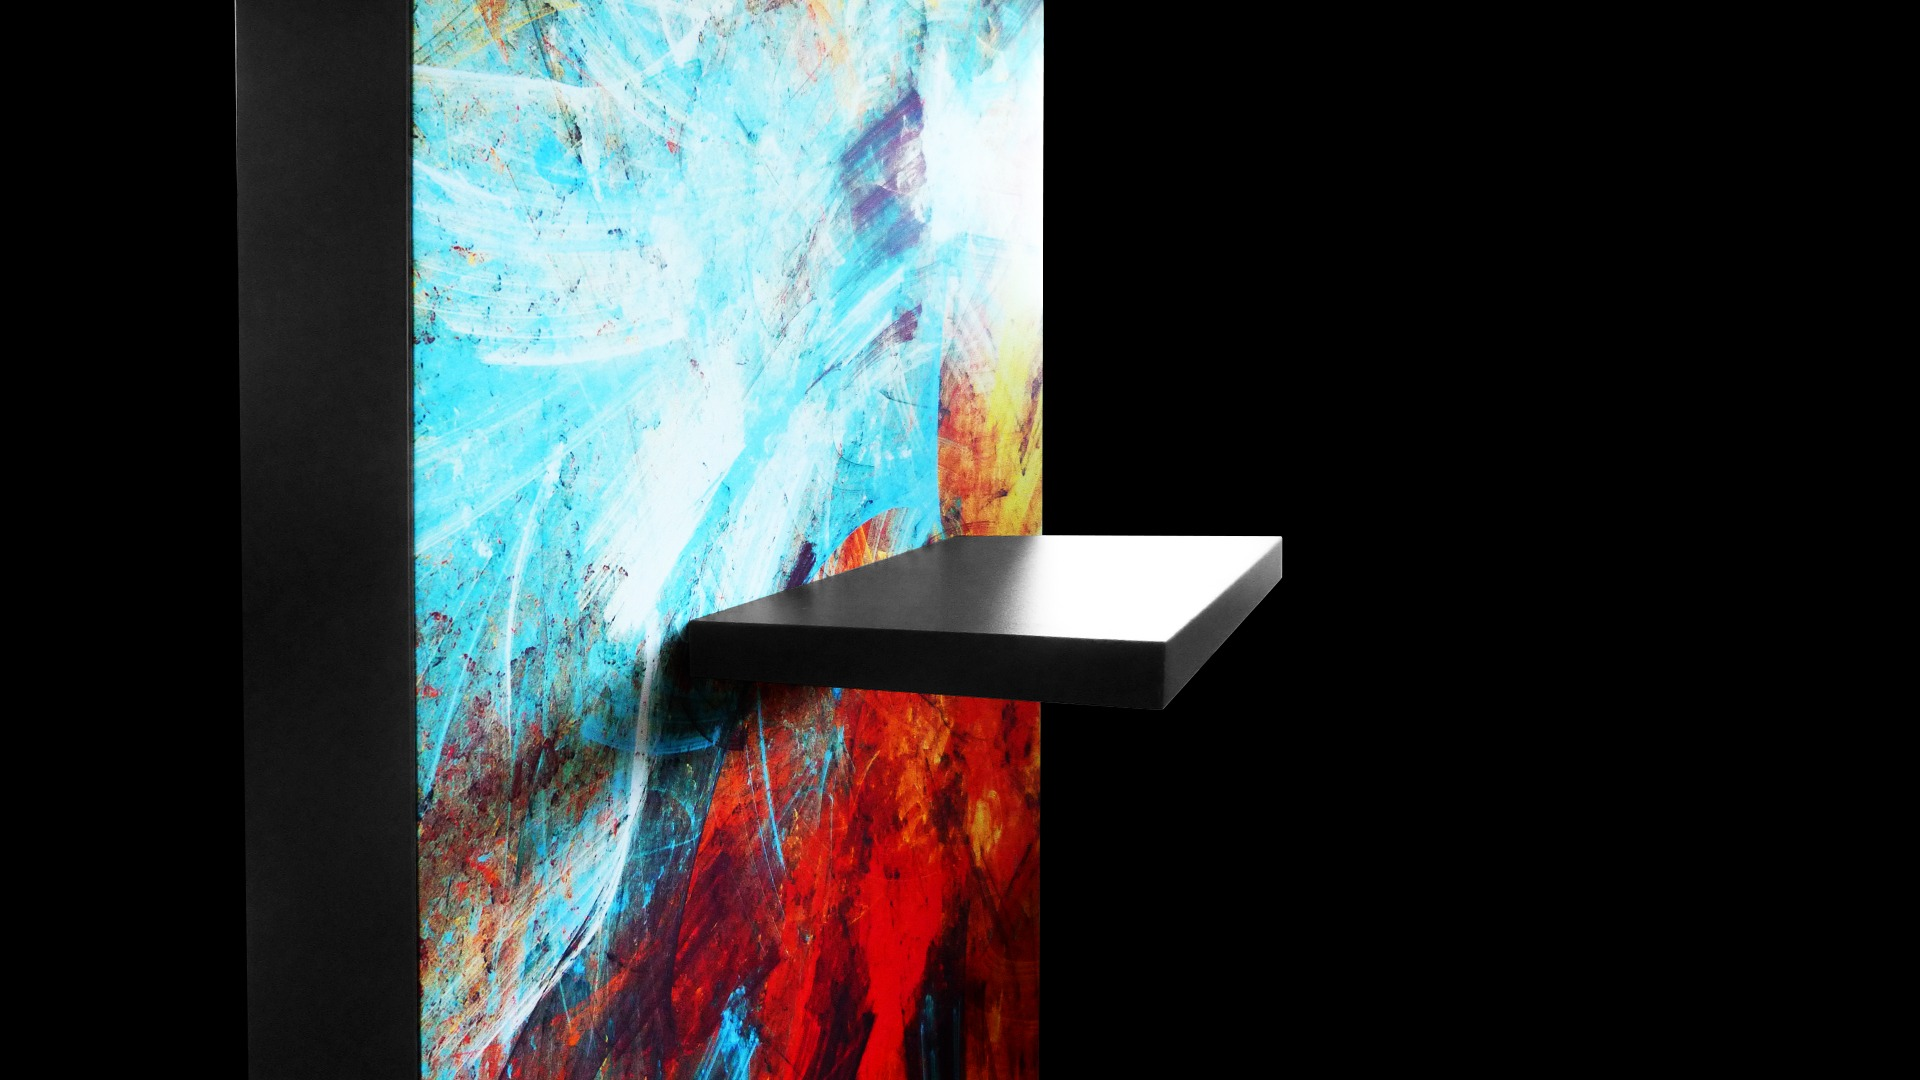 Stand out from the crowd with the new Panoramic Lightbox features!